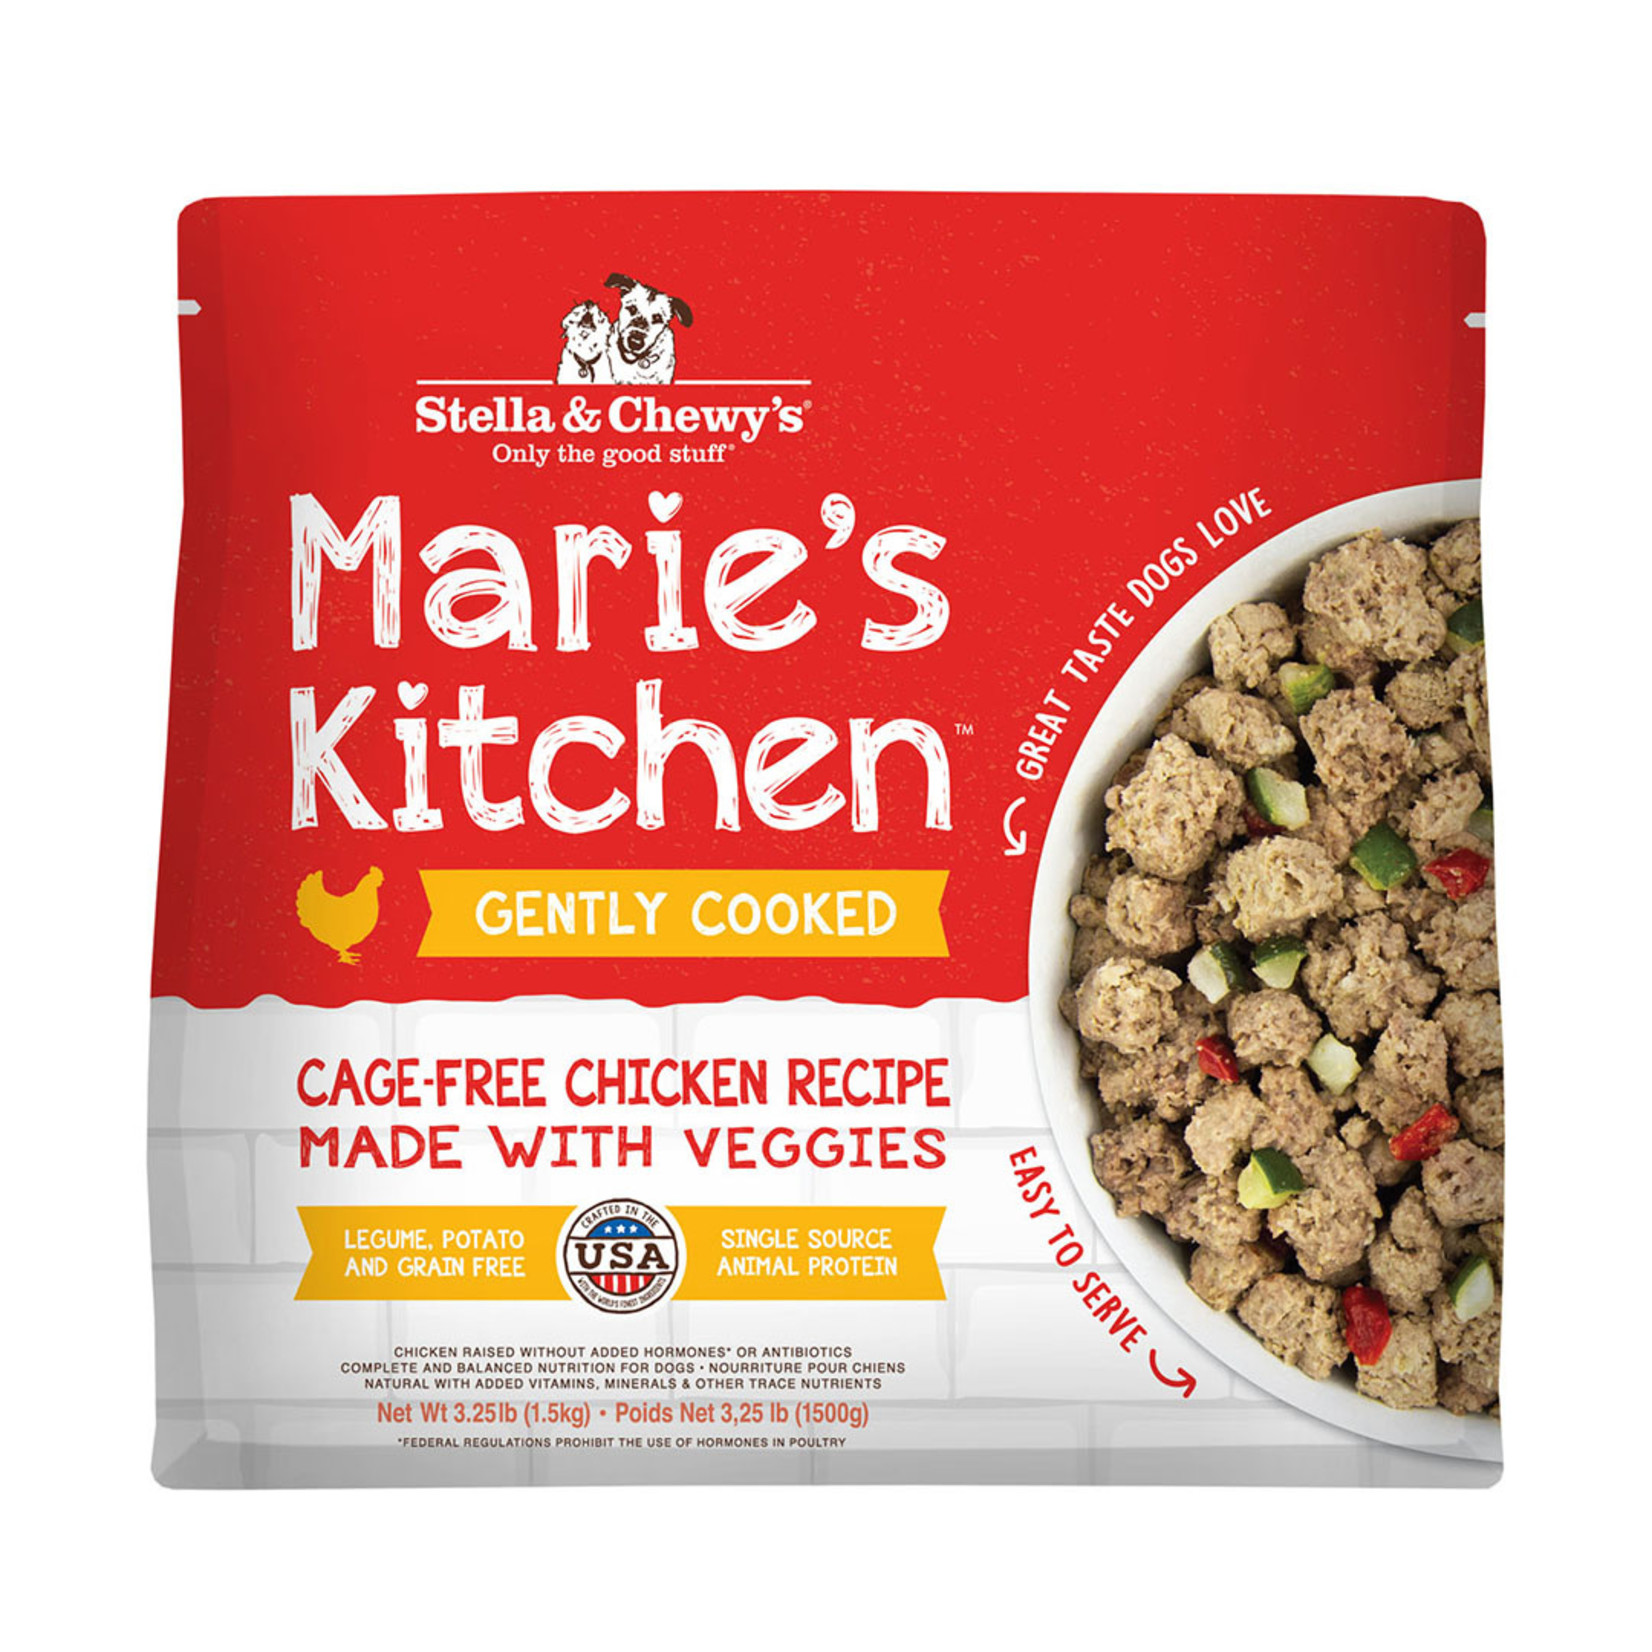 Stella & Chewys Stella Frozen Gently Cooked Marie's Kitchen Chicken 3.25#